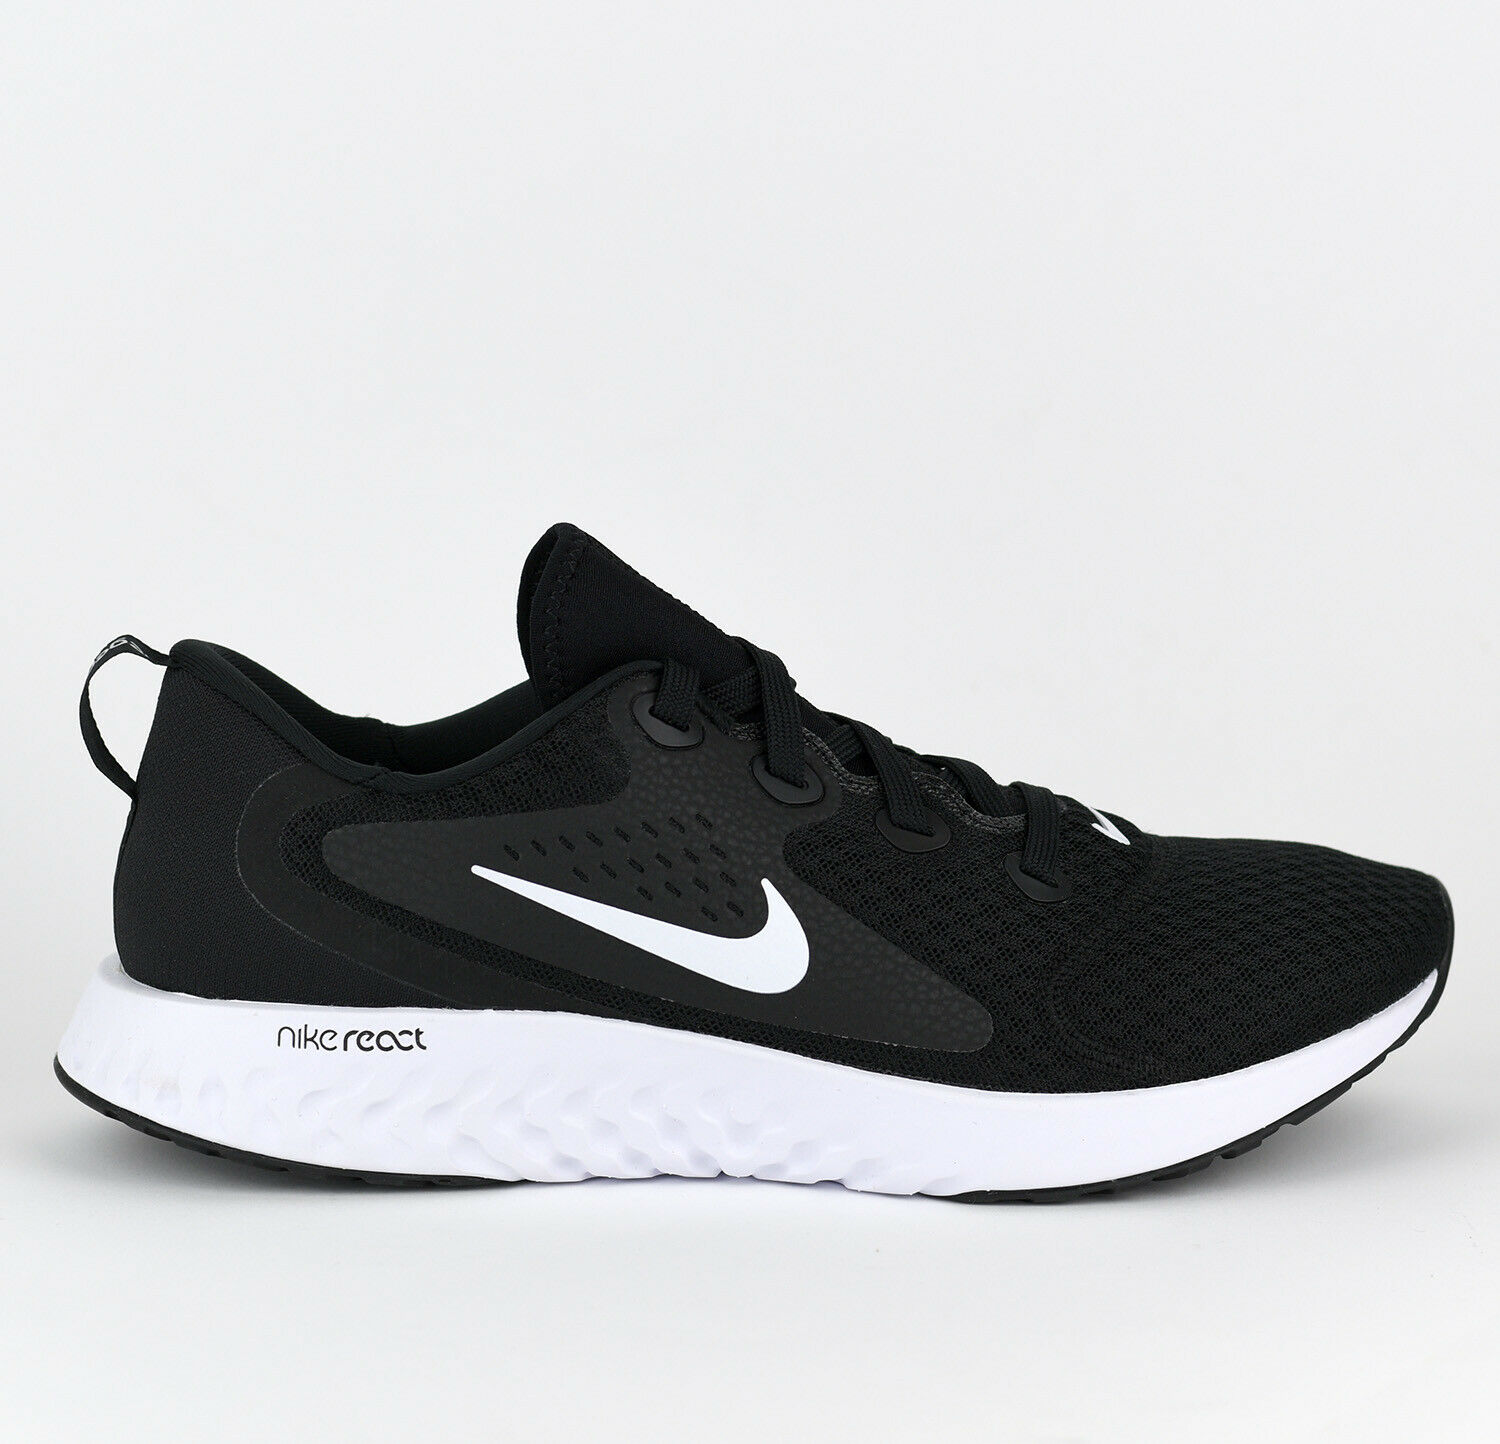 Nike Legend React Men Run Running shoes New Black White AA1625-001